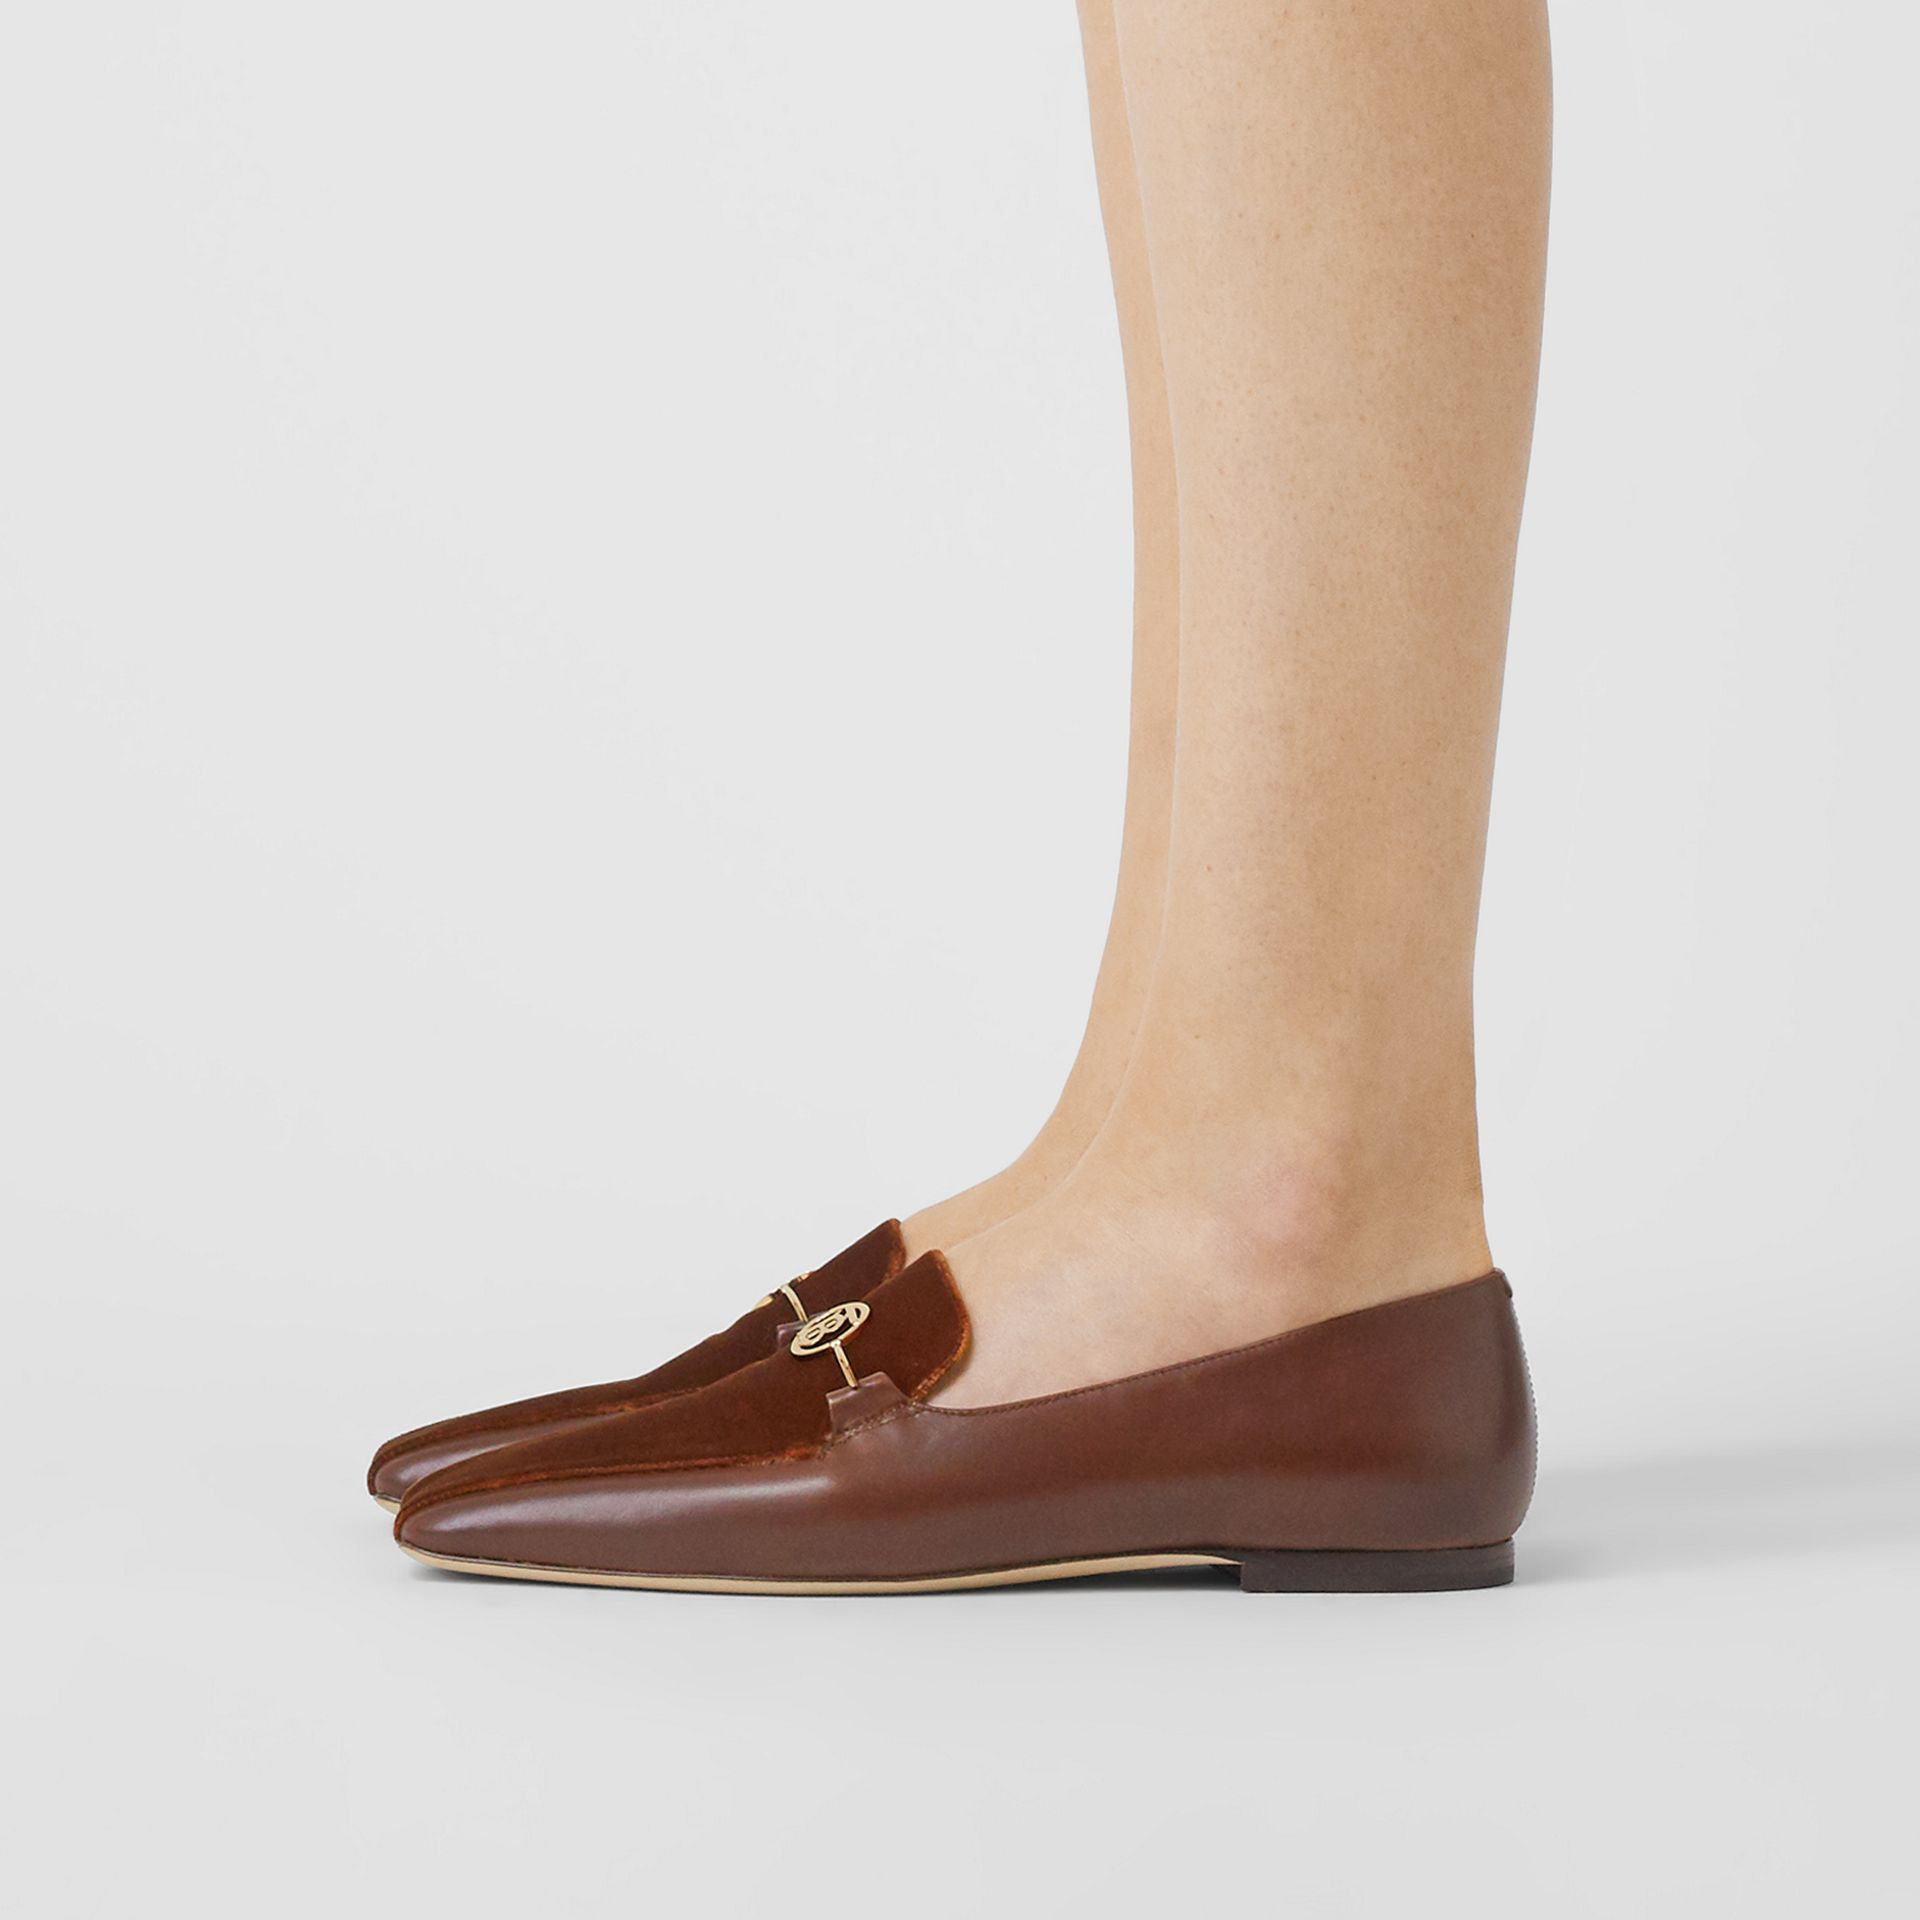 Monogram Motif Velvet and Leather Loafers in Dark Chocolate/tan - Women | Burberry - gallery image 2